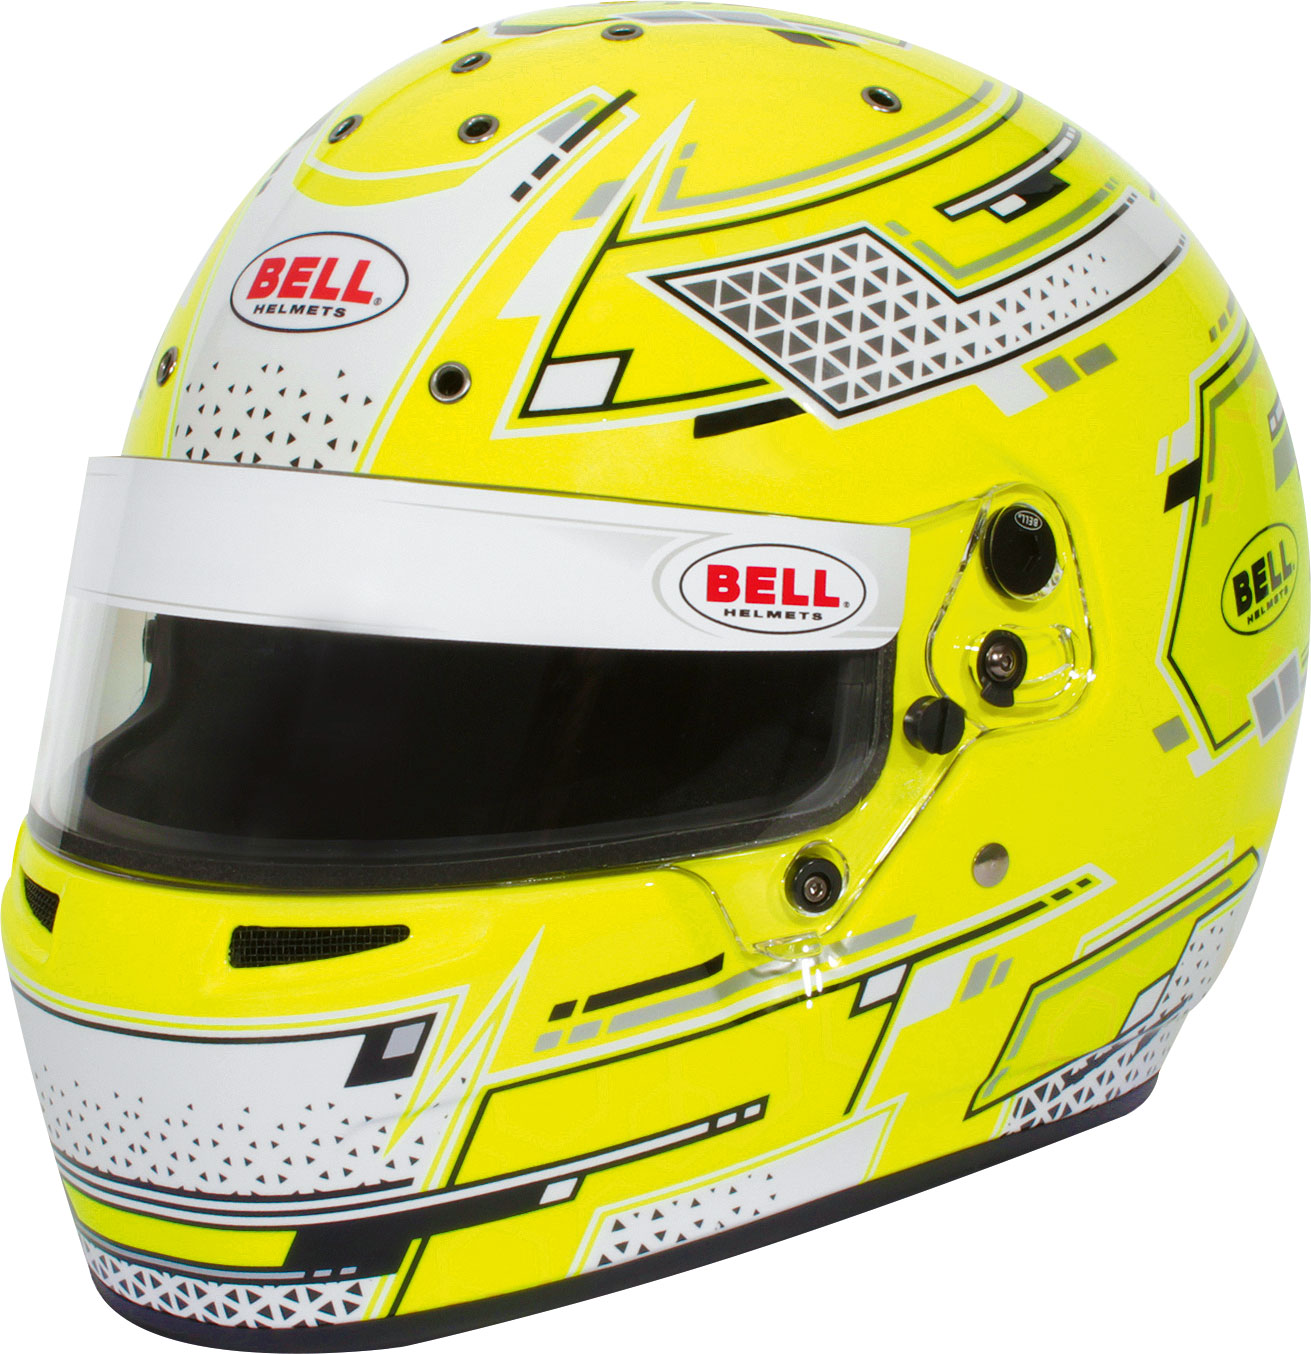 BELL Helm RS7-K